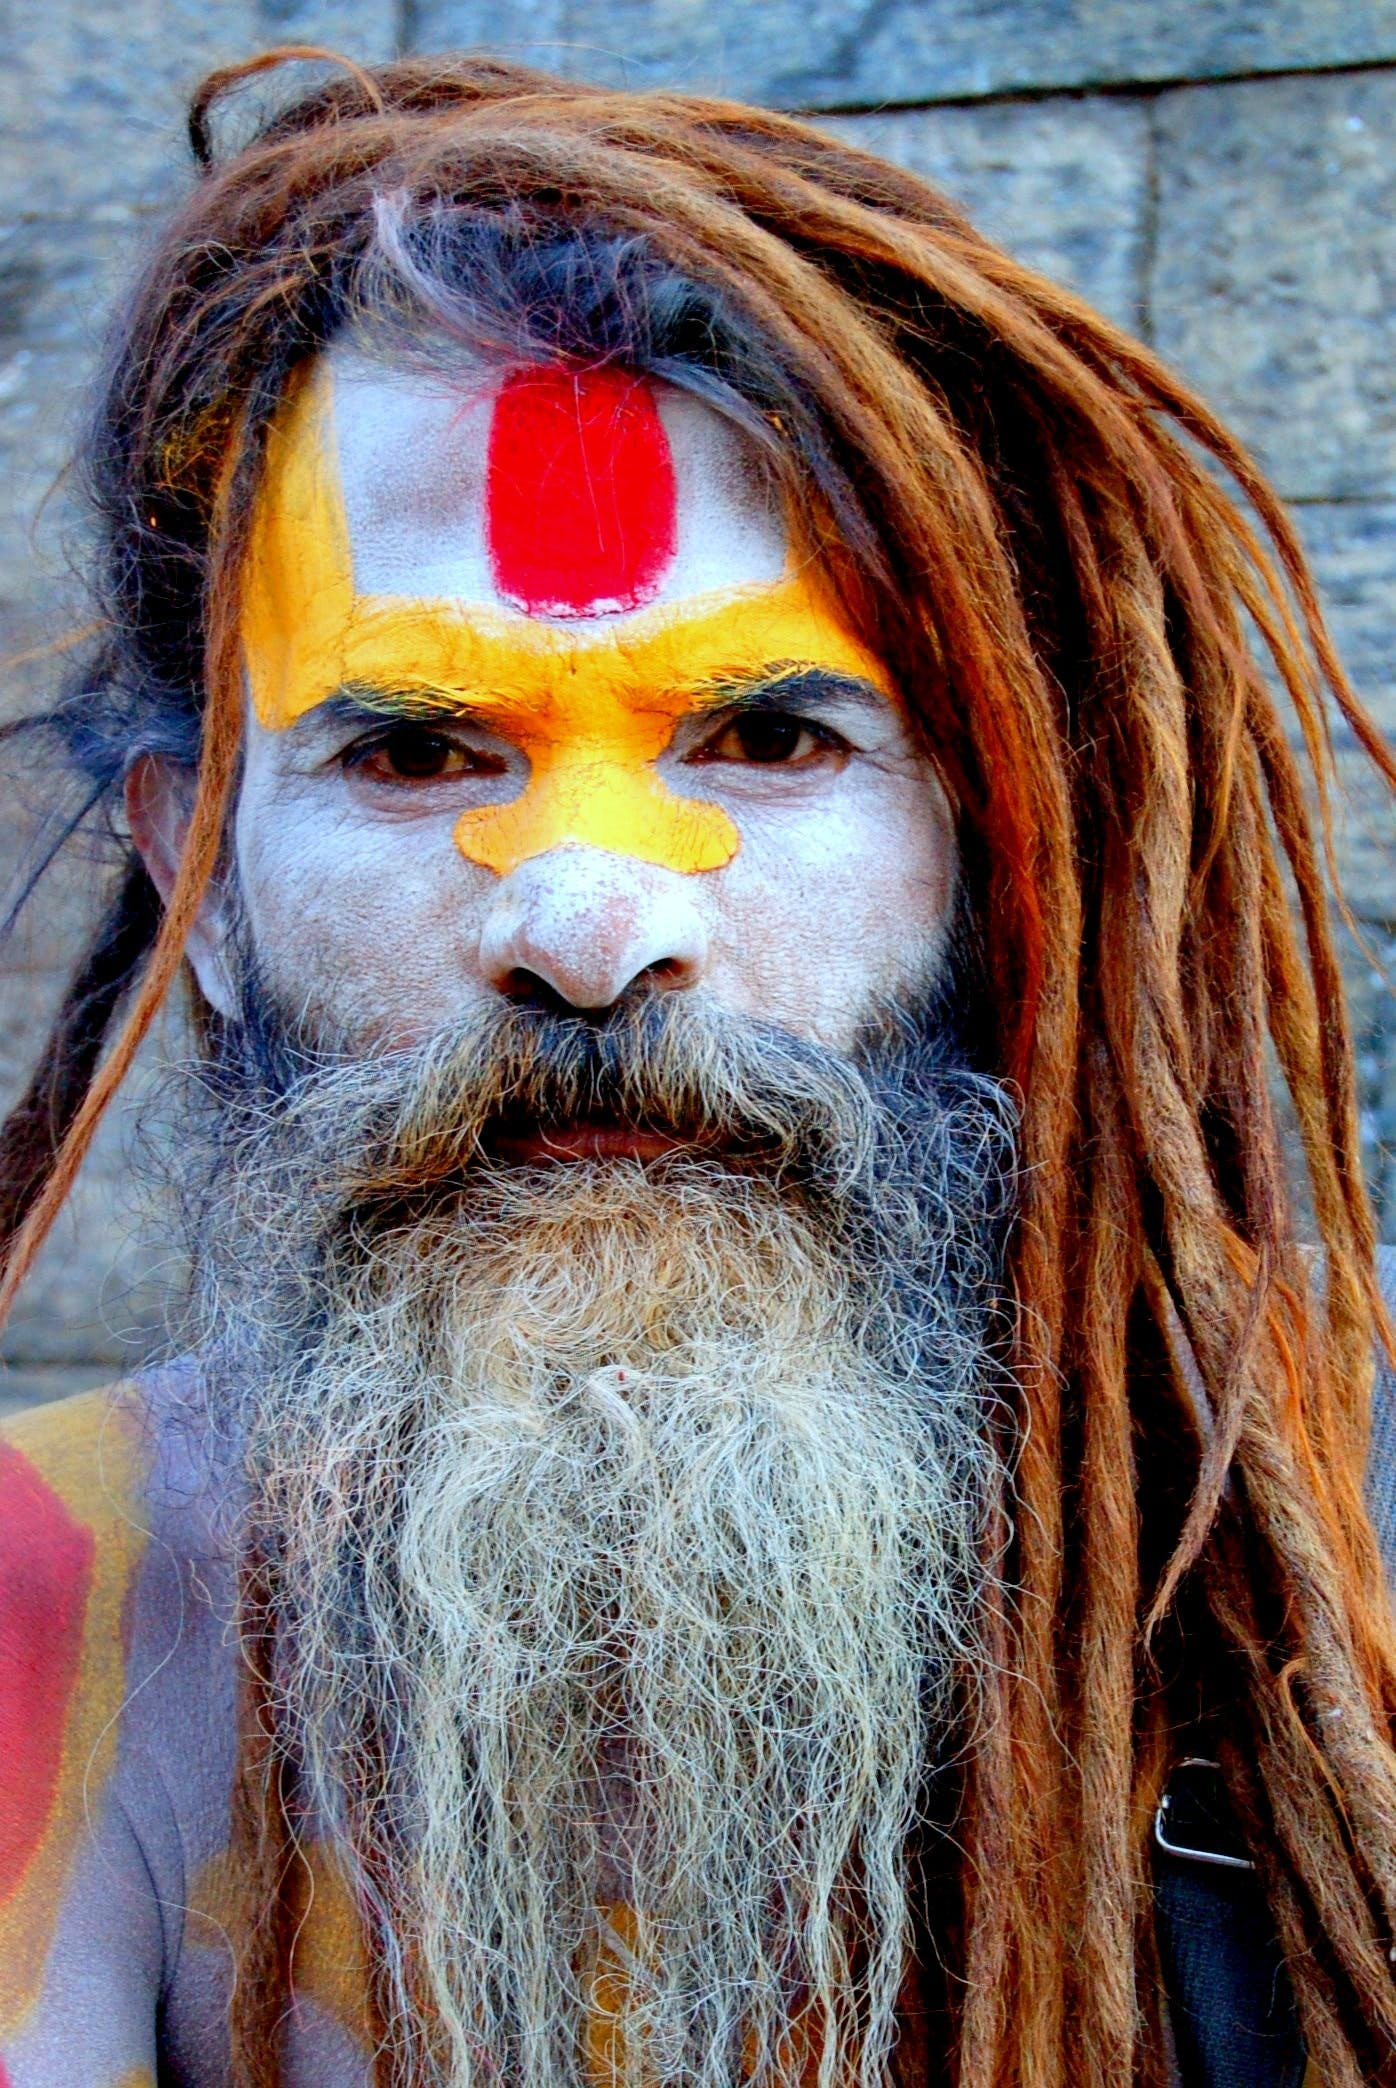 Man Painted His Face Photography